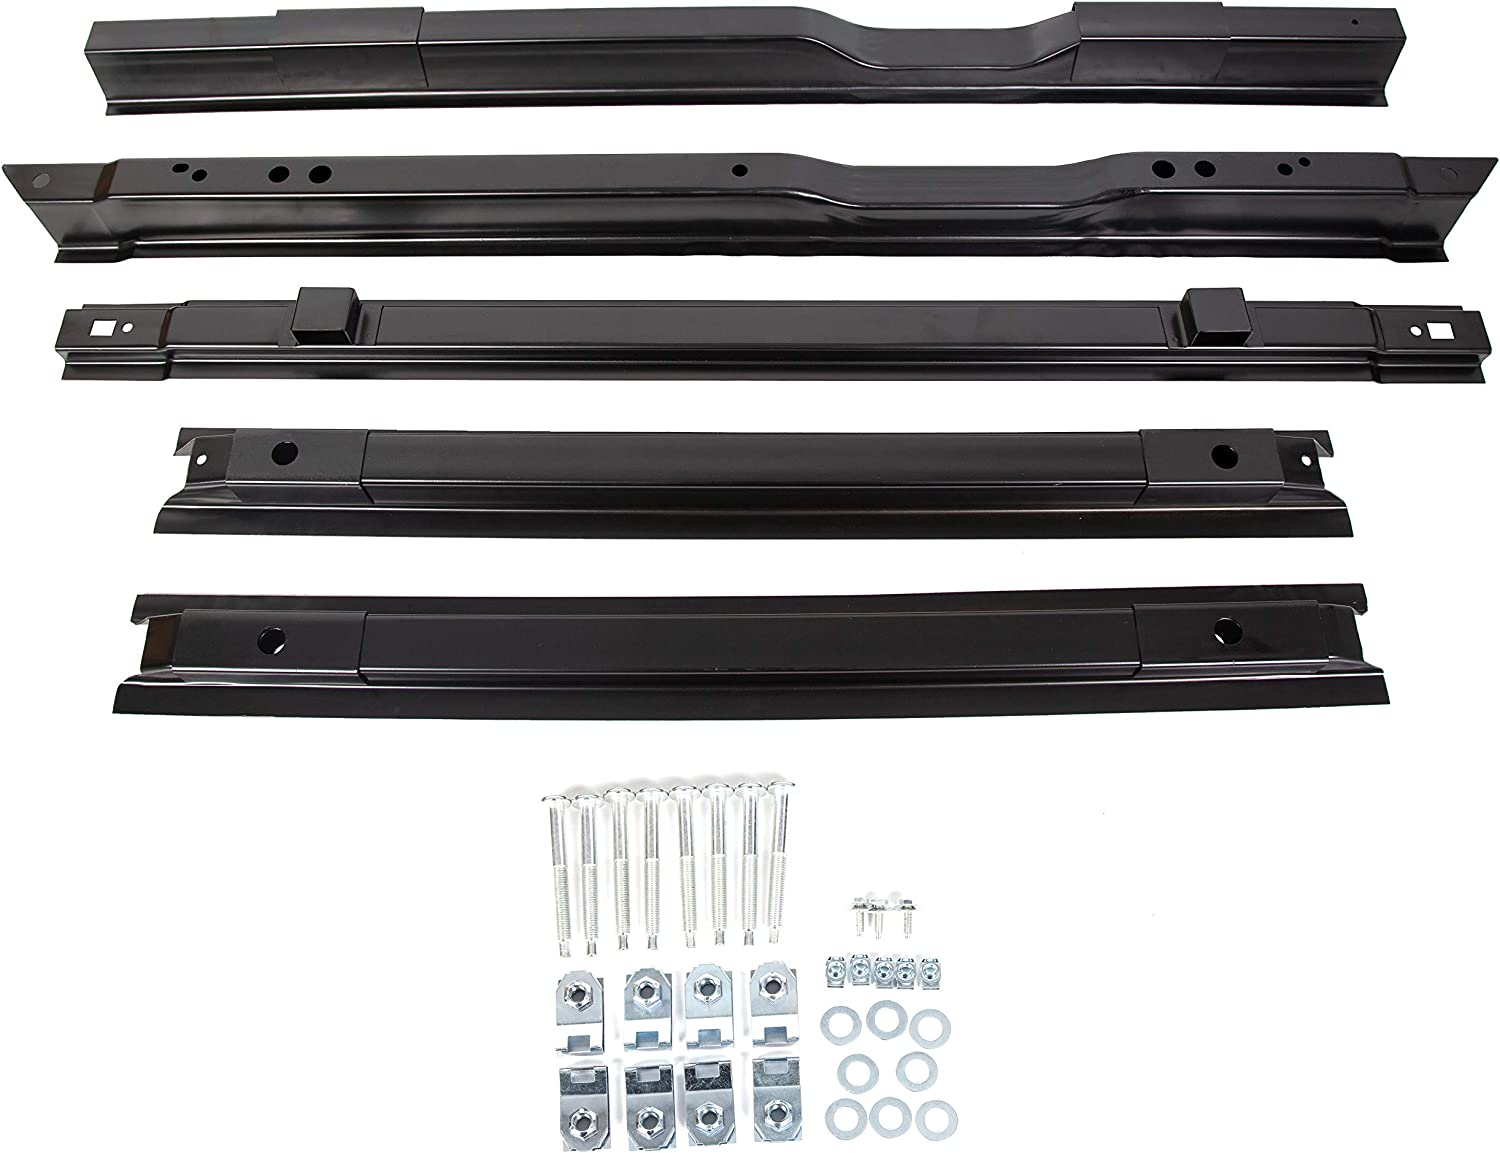 KUAFU Long Truck Bed Floor Support Kit Cross Member Kit Replacement for BC3Z9911215A YC3Z9911215BA Fits Ford F250 F350 F450 1999-2018